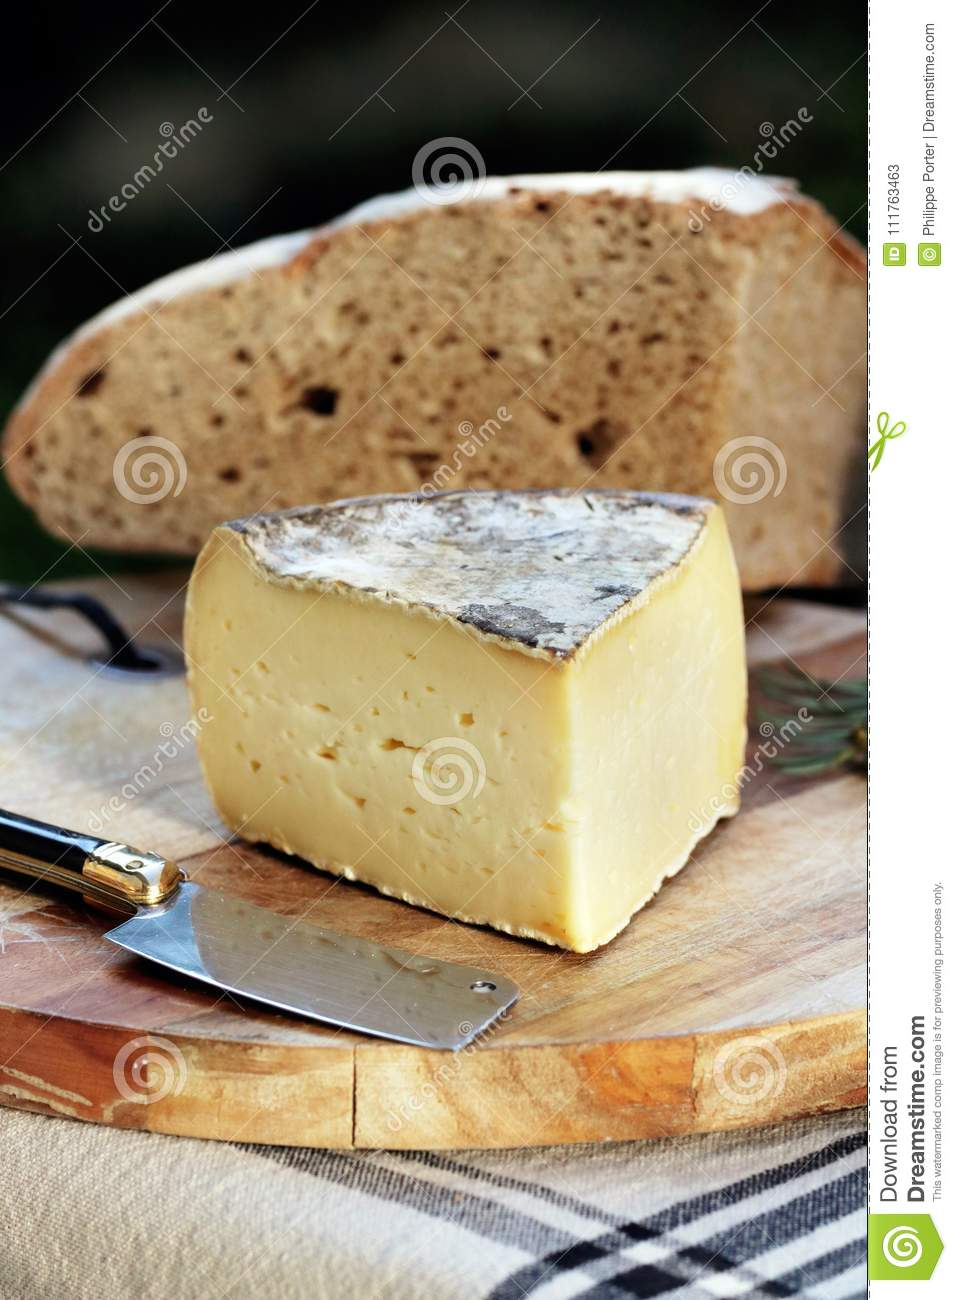 tomme de savoie french cheese savoy french alps france stock image rh dreamstime com